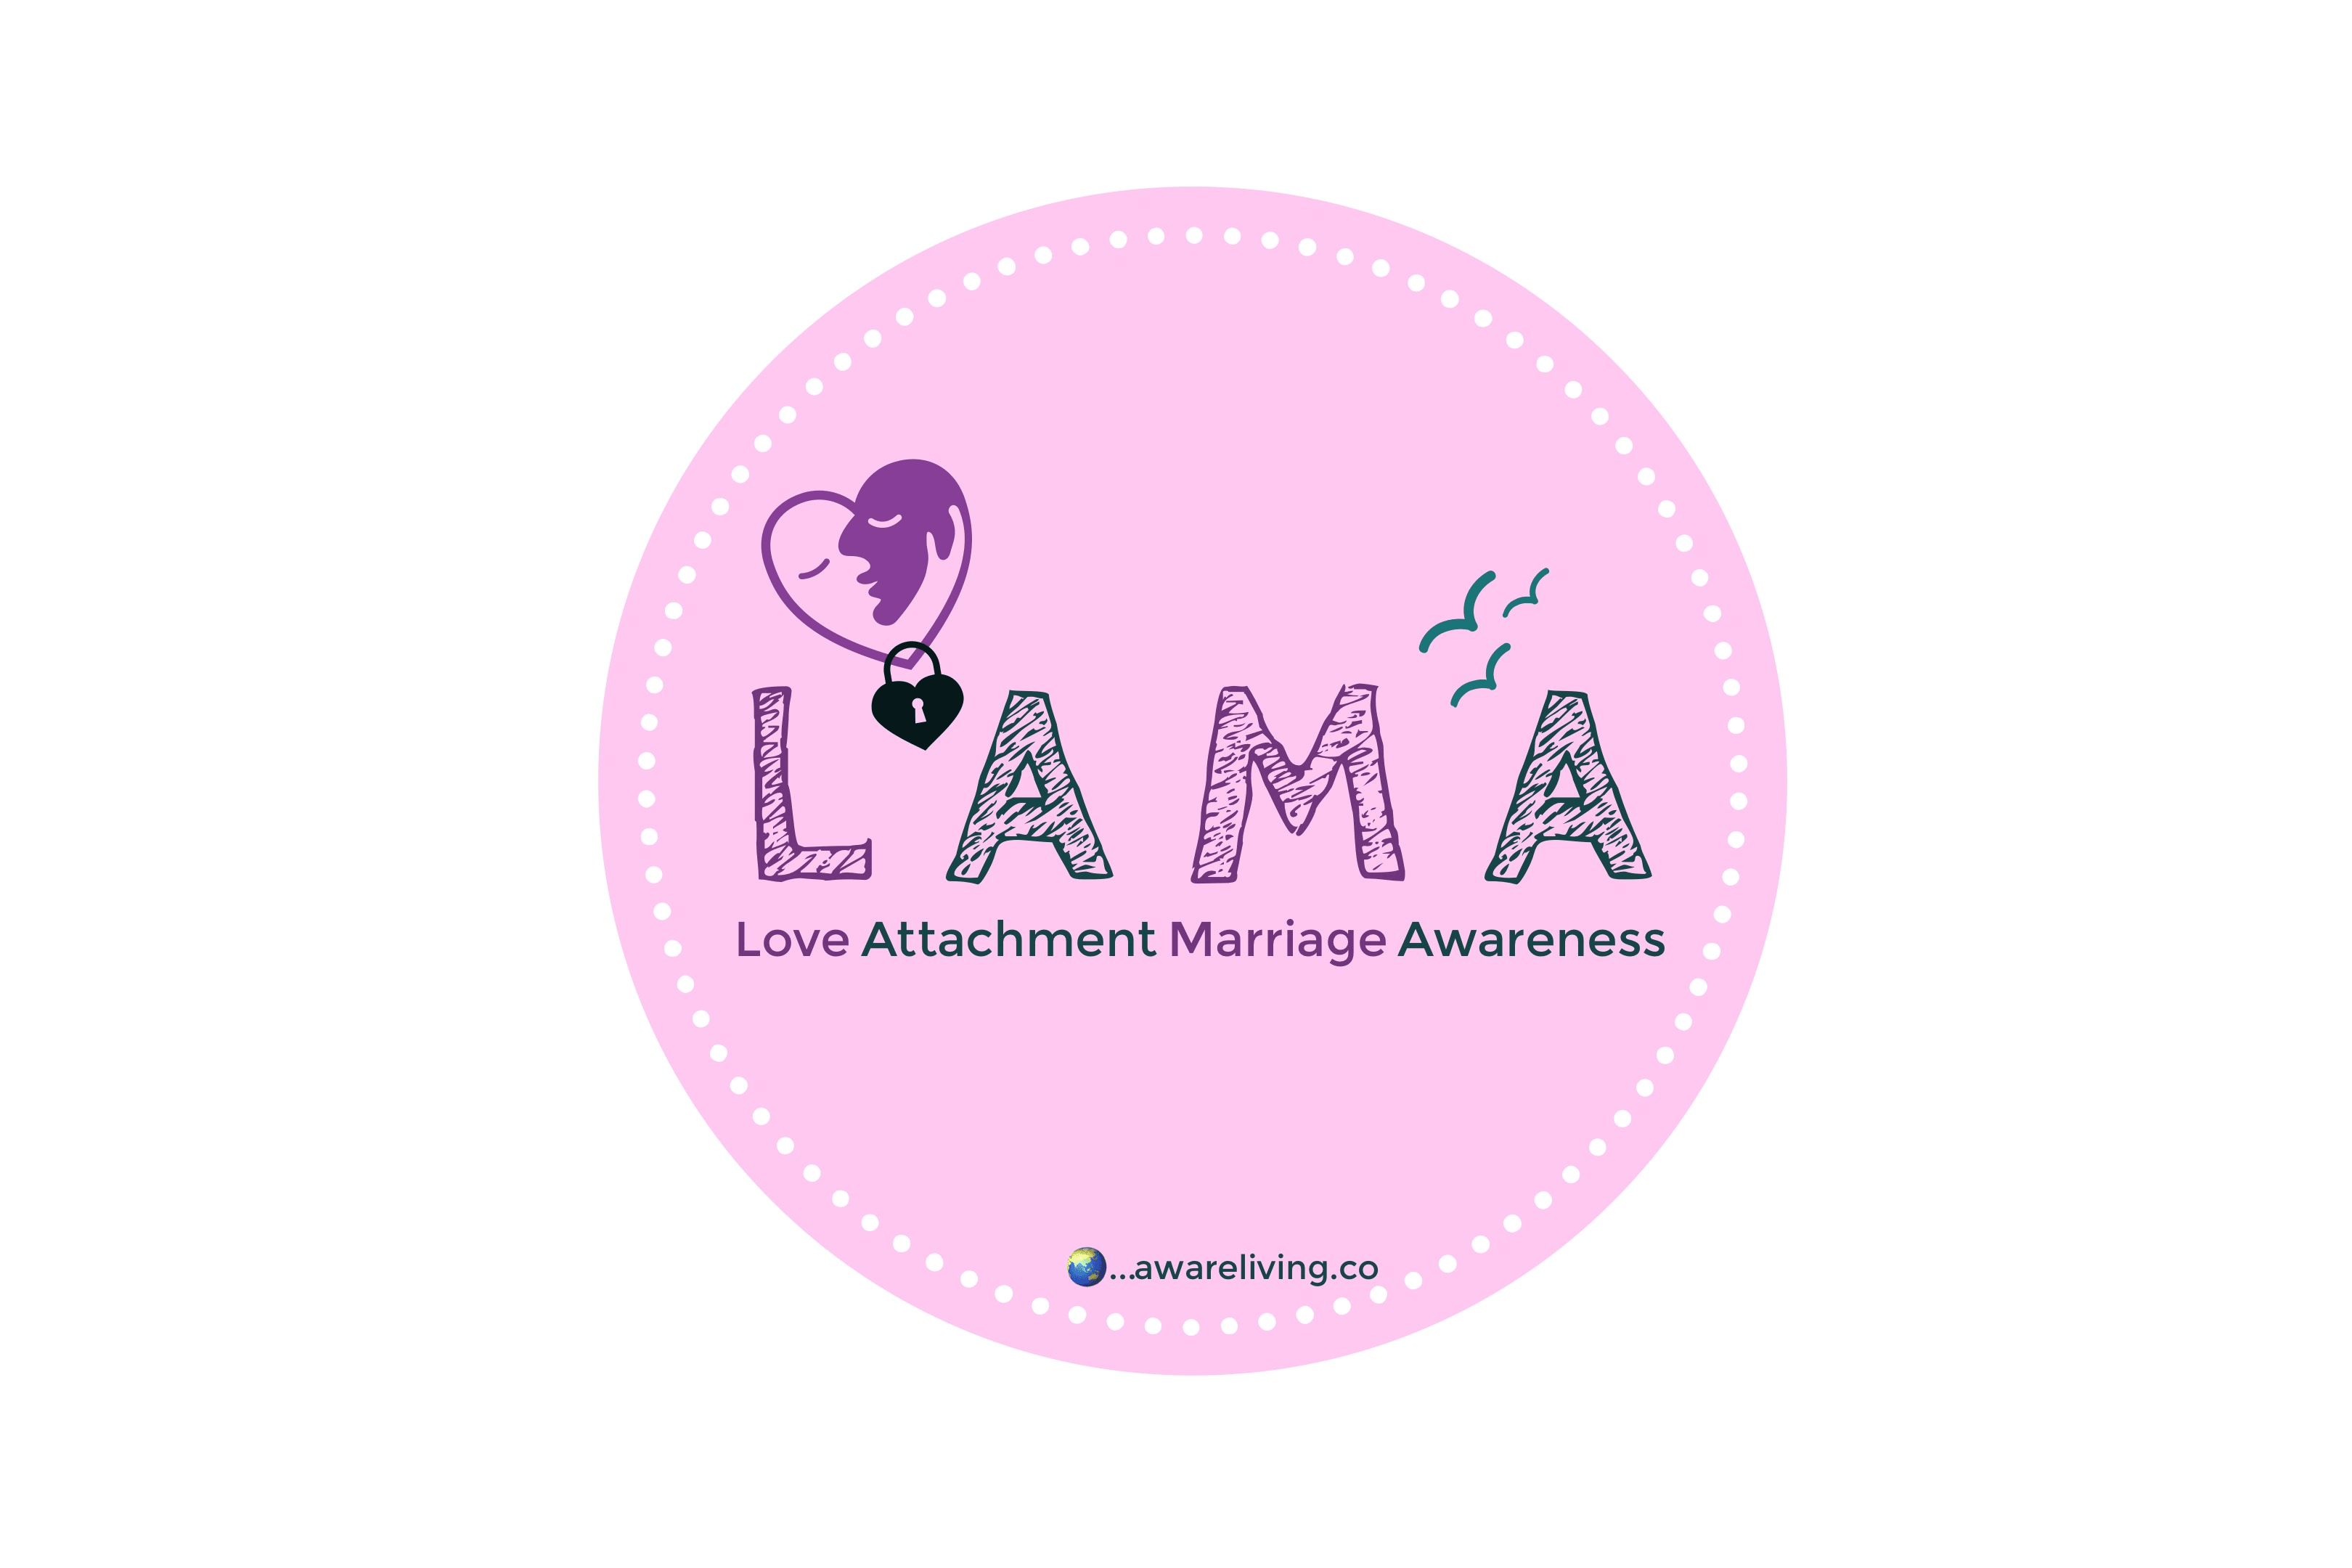 Love Attachment Marriage Awareness